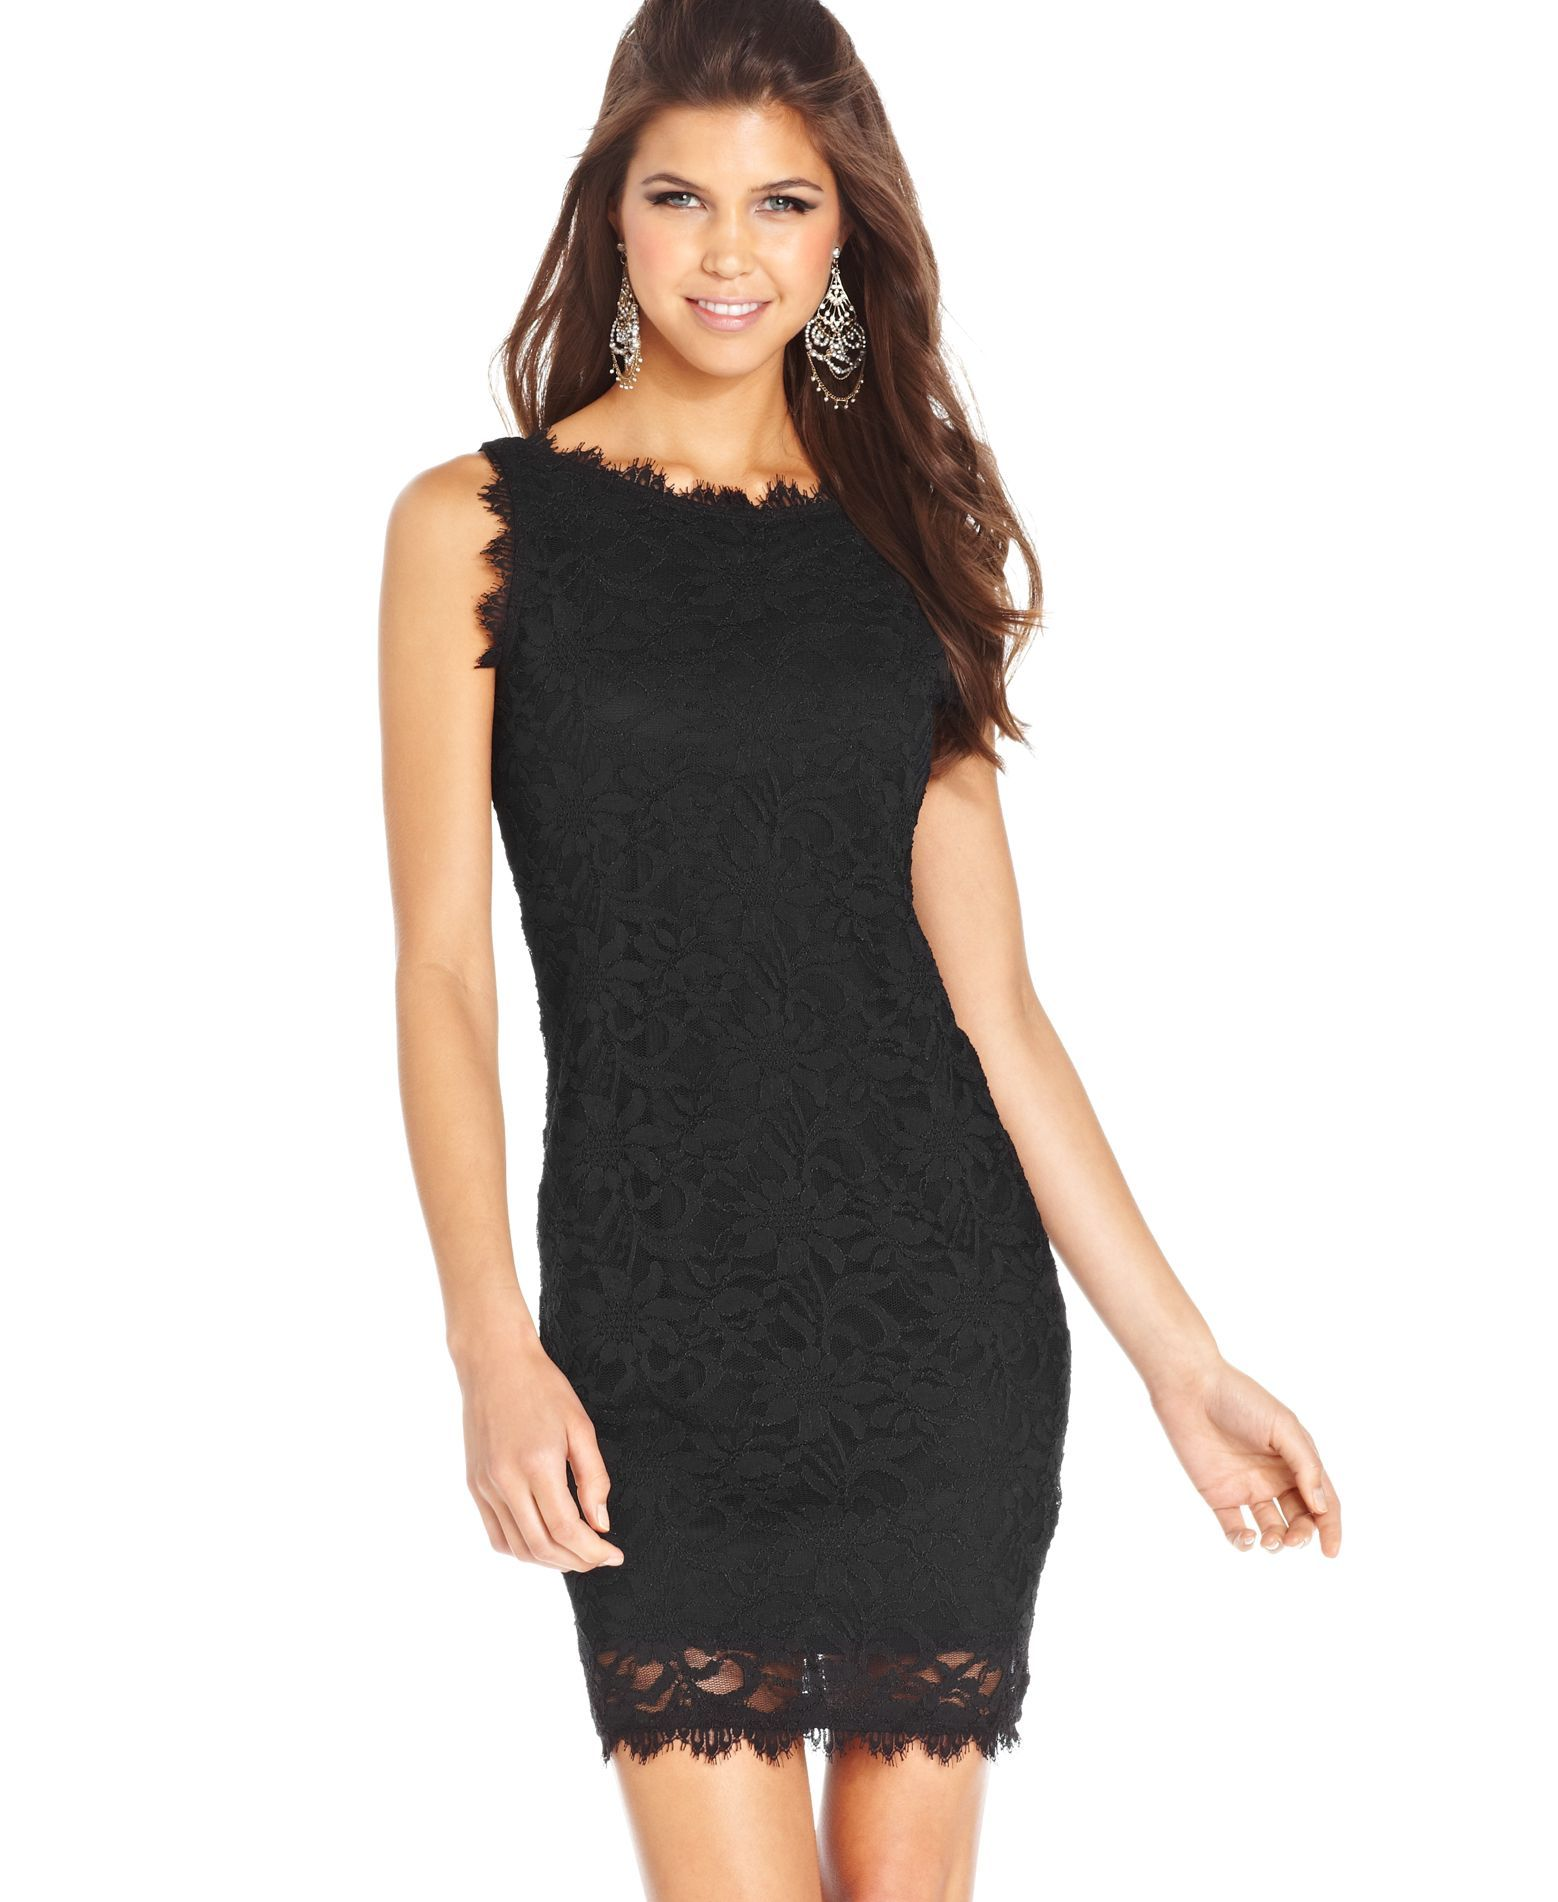 ffc7edb0e Jump Juniors  Sleeveless Lace Dress (Macy s) - goal Get skinny ...